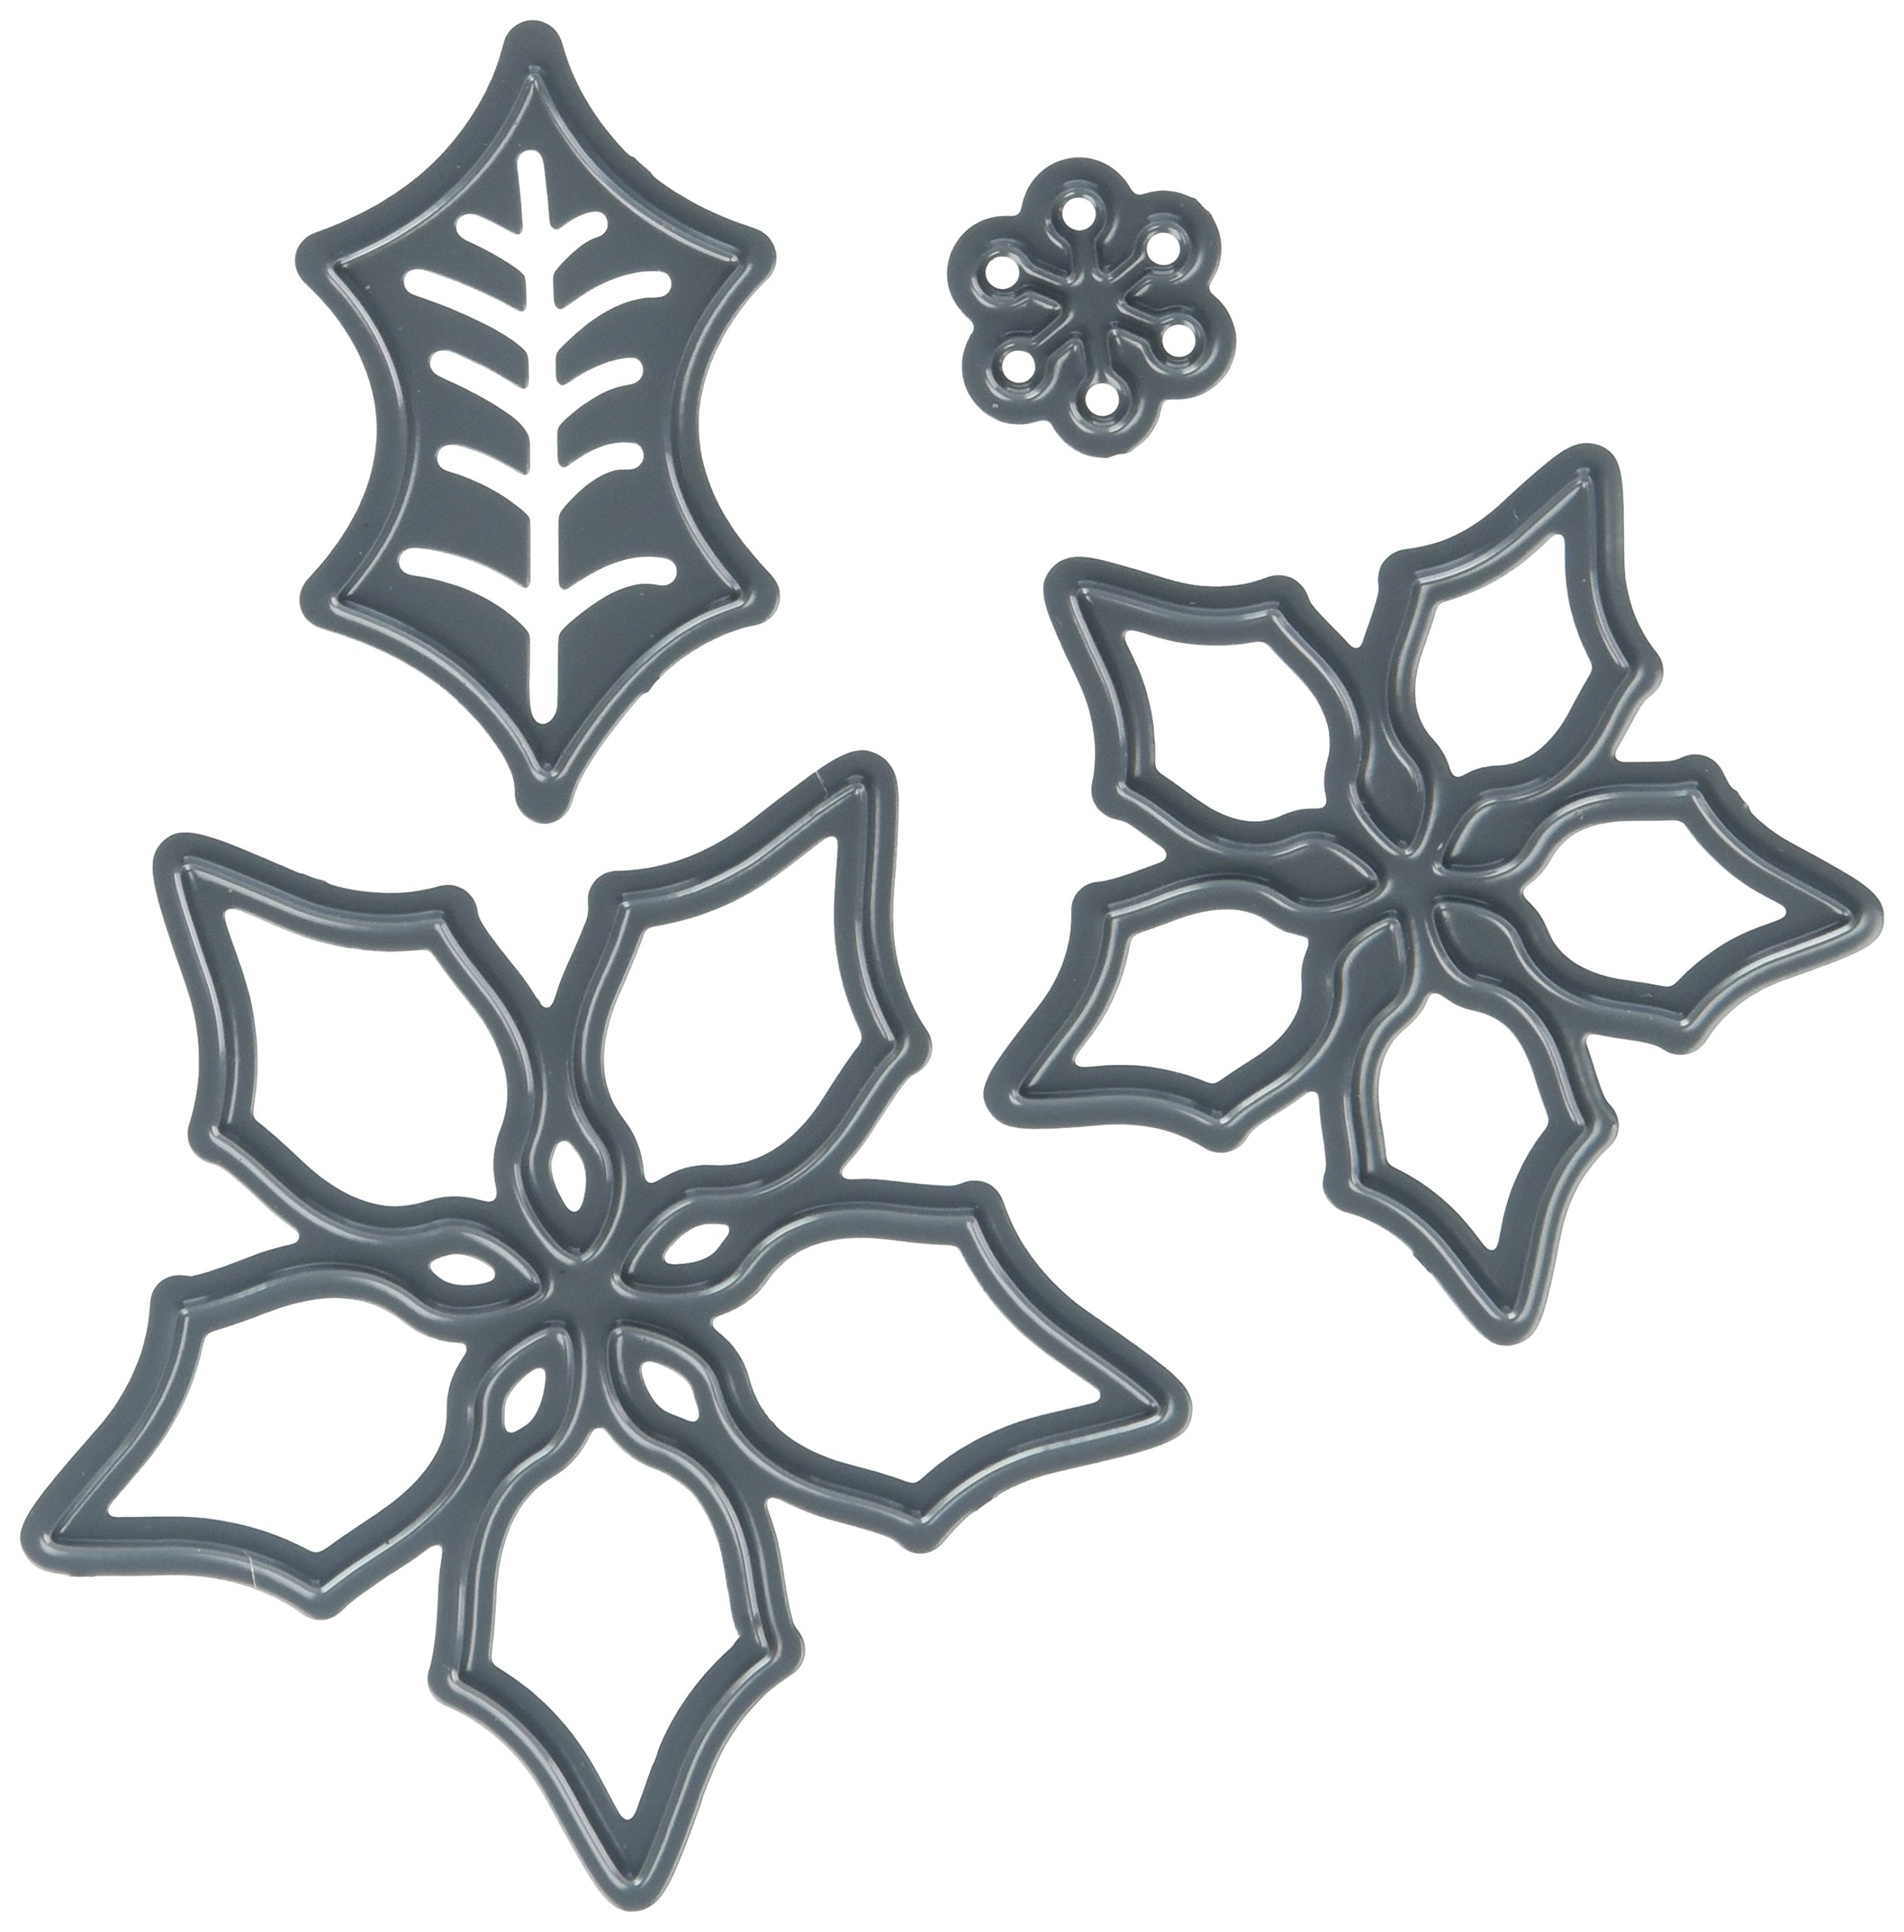 Darice 2014-38 Die Cut 3 Piece Poinsettia Set Paper Craft Supply